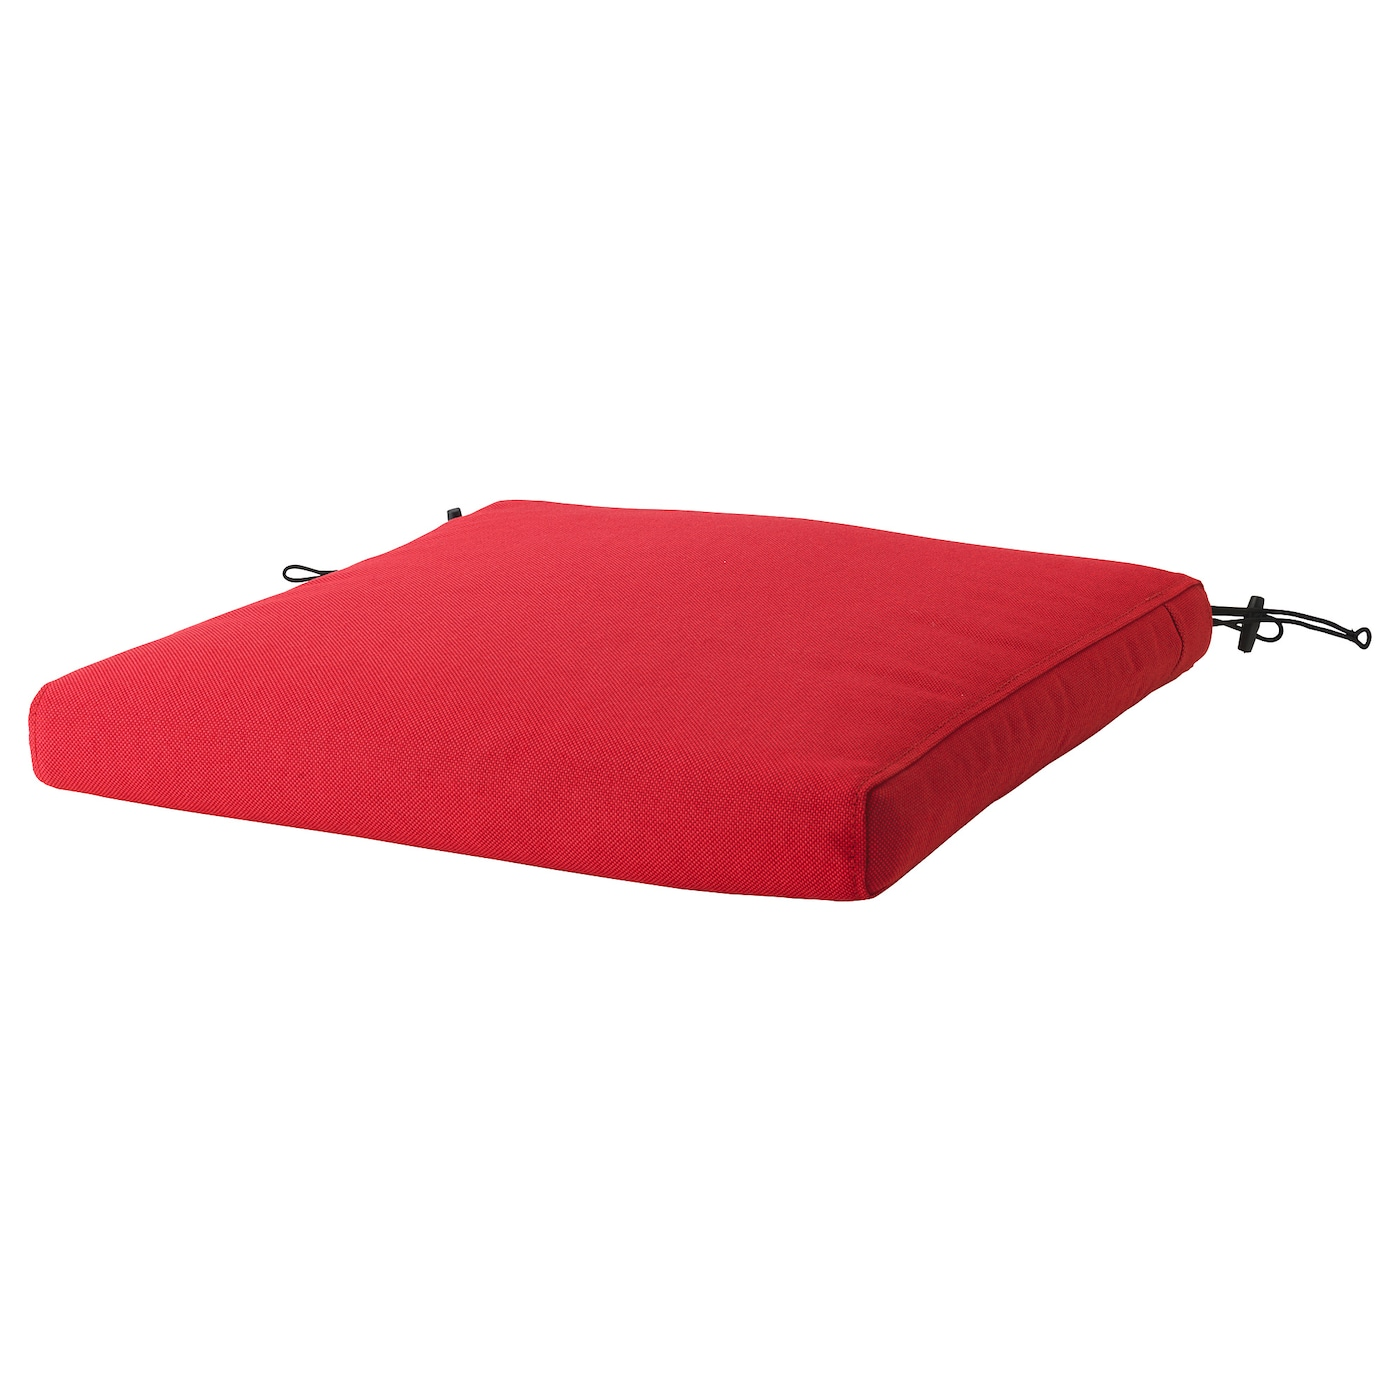 fr s n duvholmen coussin de chaise ext rieur rouge 44x44 cm ikea. Black Bedroom Furniture Sets. Home Design Ideas